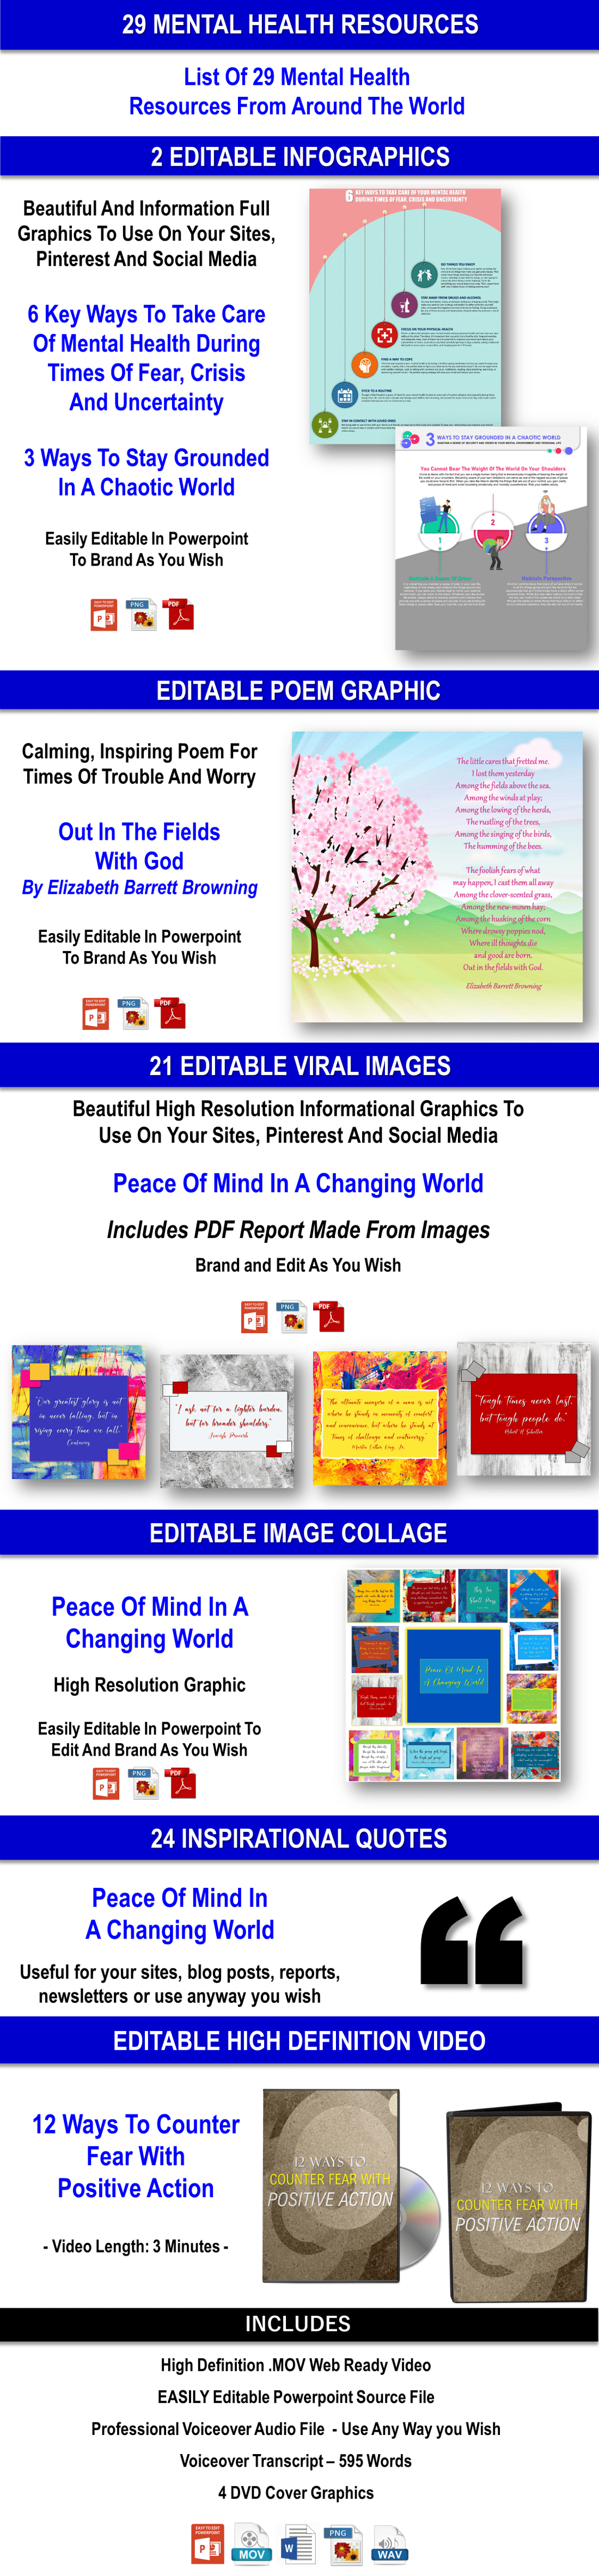 Survive A Changing World: Protect Your Mental Health In Times Of Fear, Crisis And Uncertainty Content With PLR Rights